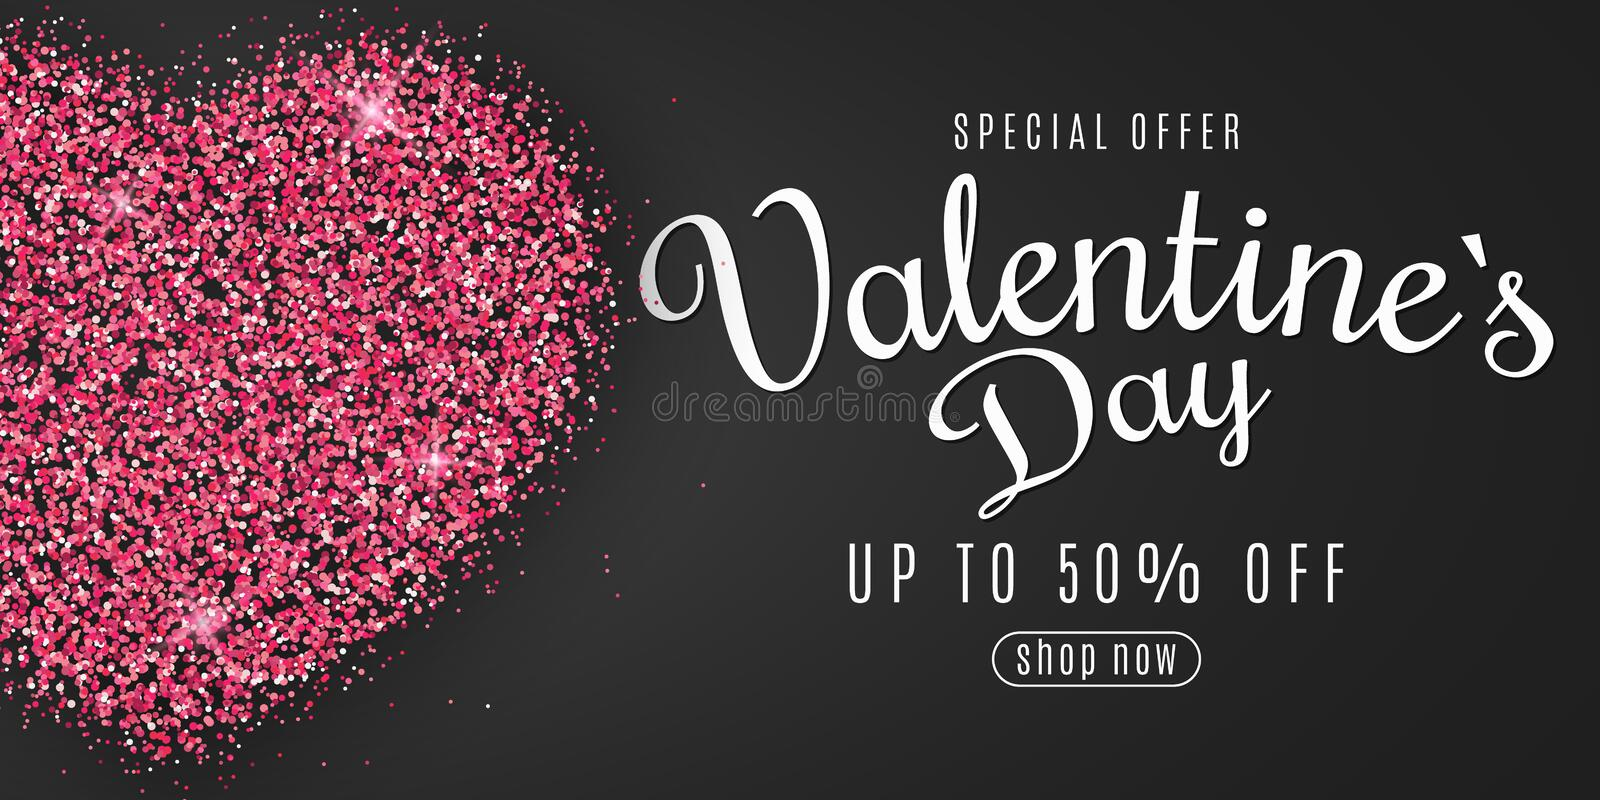 Valentine`s Day web banner for sale. Heart of pink glitters with calligraphy. Special offer. Big discounts. Brilliant dust. Vecto stock illustration